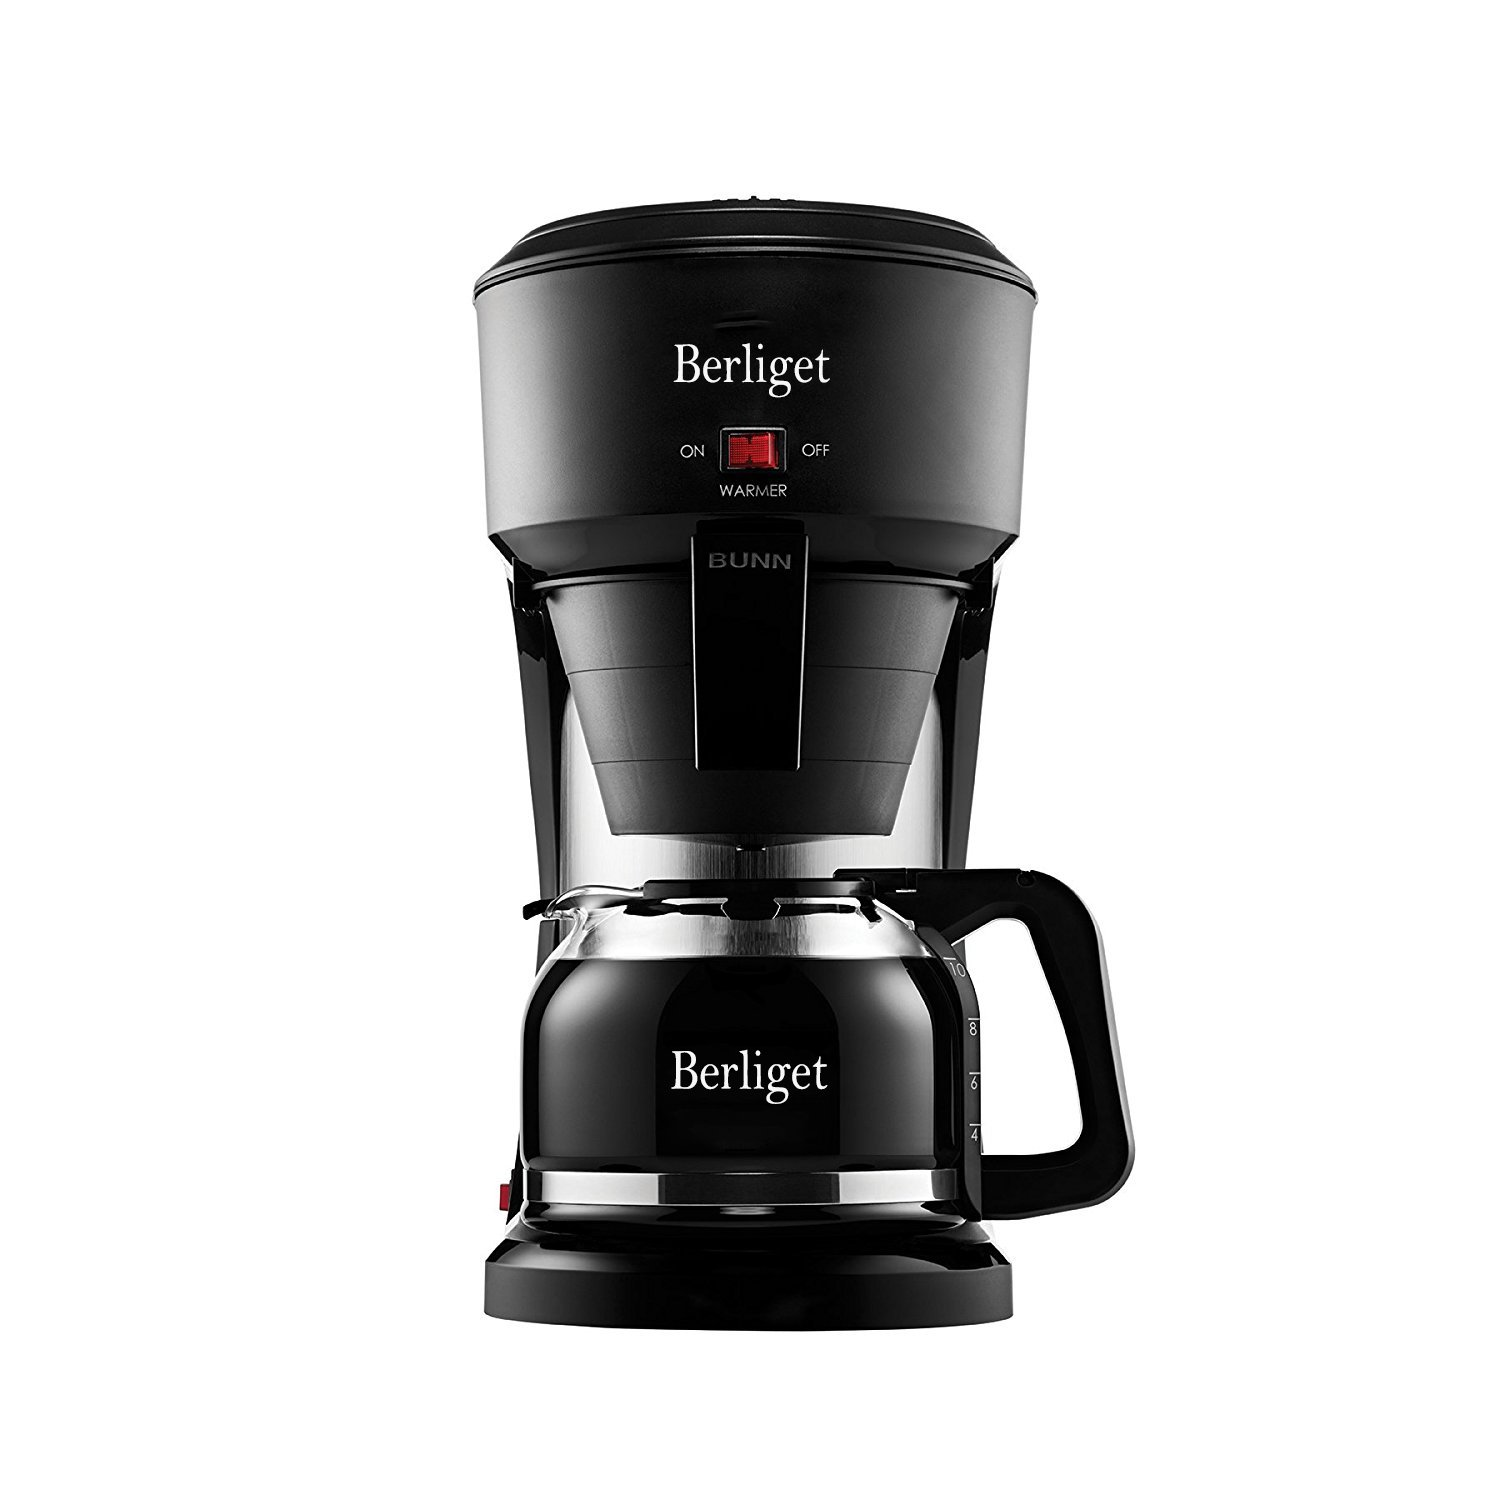 Berliget Personal 1 Cup Drip Coffee Maker to Brew Ground Beans - Black and Silver Single Serve One Cup Coffee Dripper